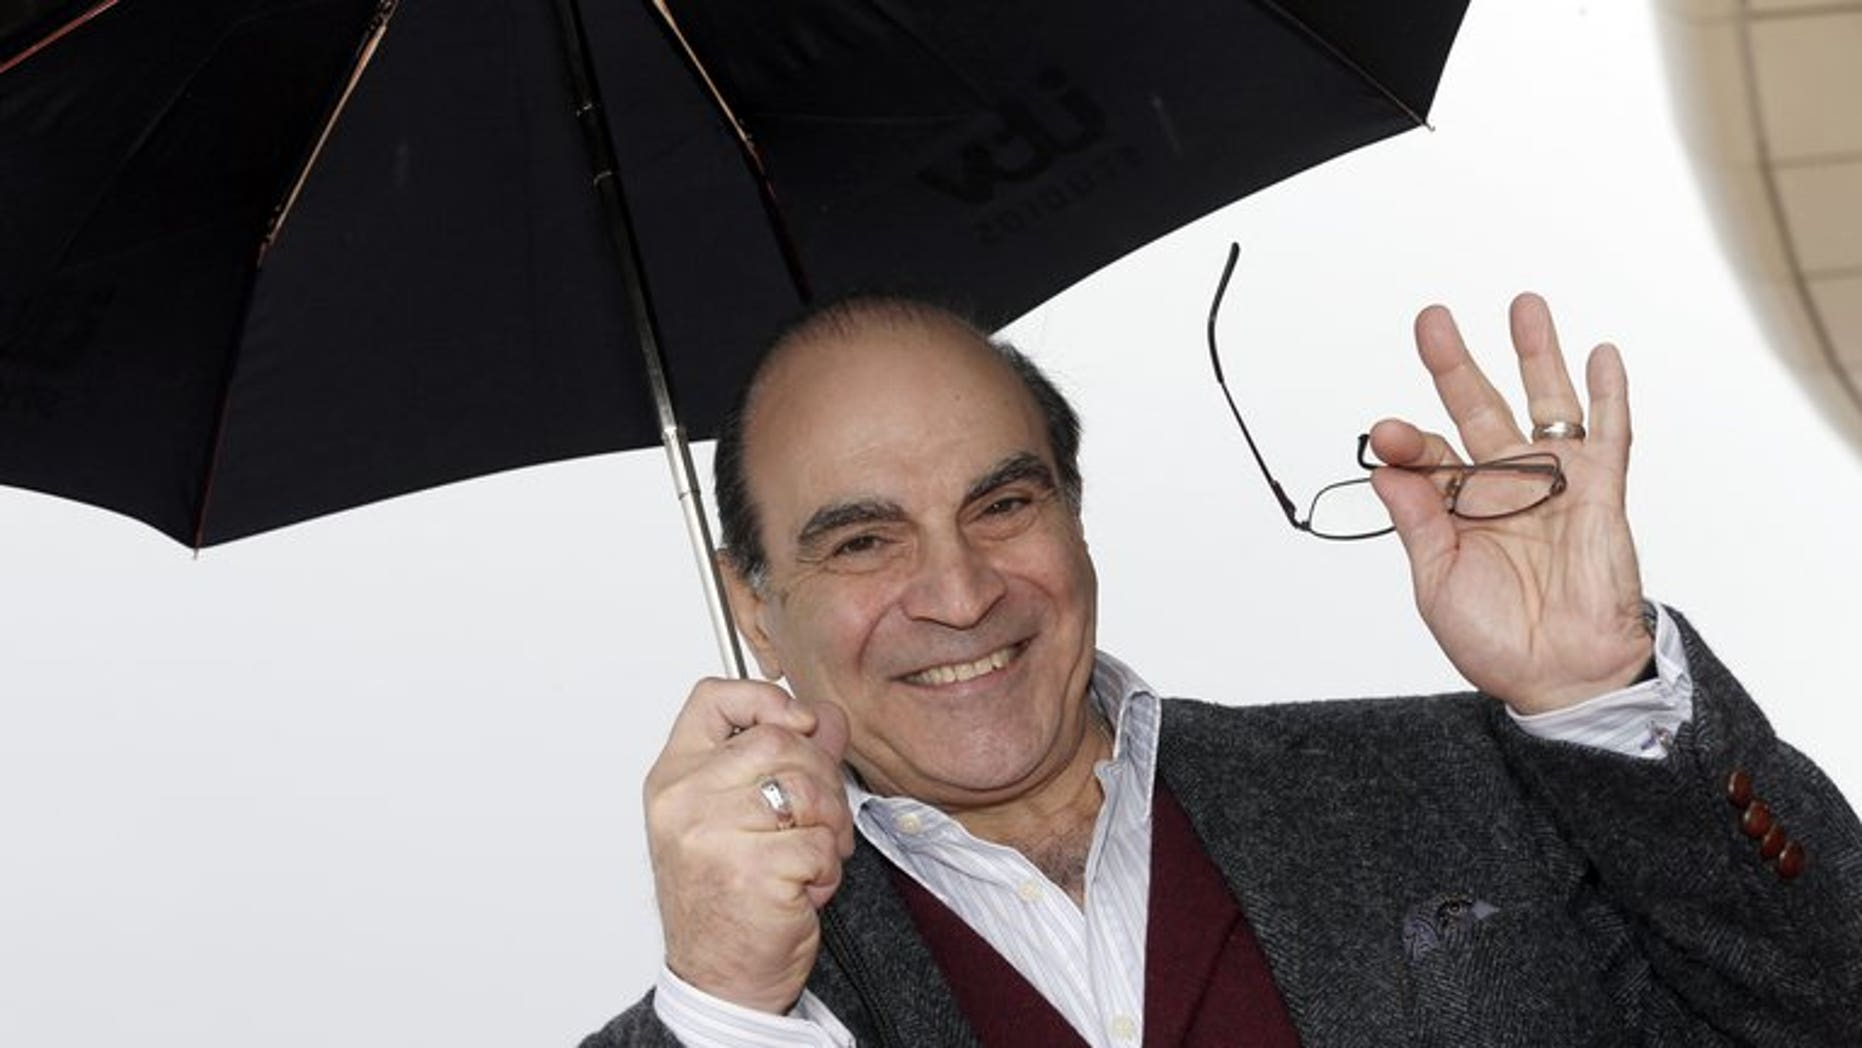 """British actor David Suchet poses during the photocall of """"Poirot"""" on April 8, 2013 in Cannes, southeastern France. Agatha Christie's mustachioed detective Hercule Poirot is to be resurrected in a new novel nearly 40 years after his last adventures."""